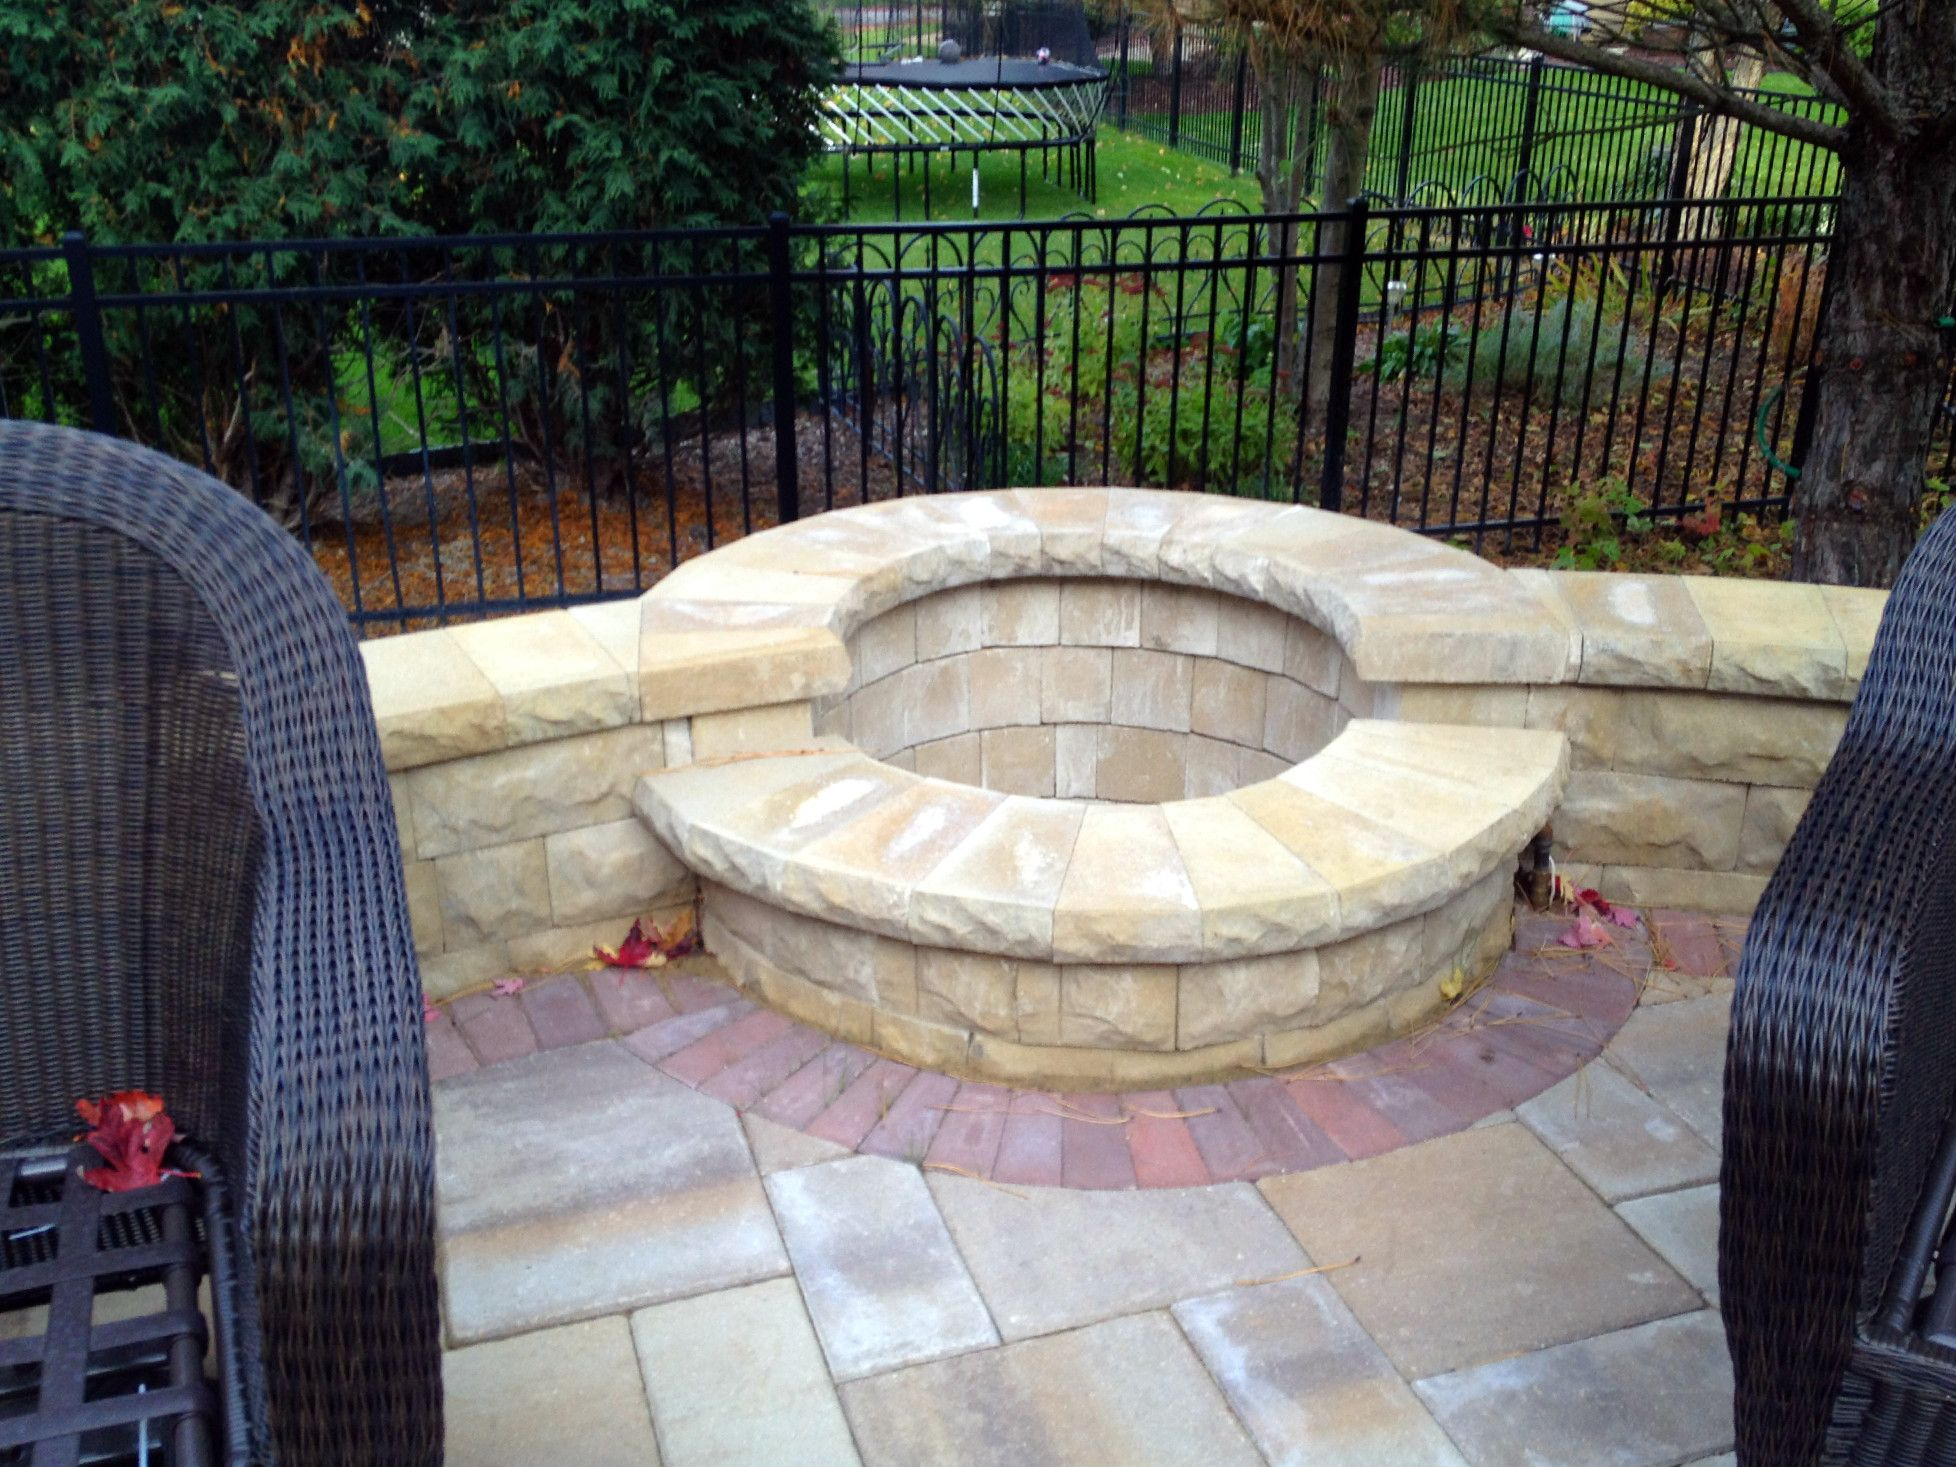 Built In Patio Fire Pit By Aurora, IL Patio Builder   Design Ideas